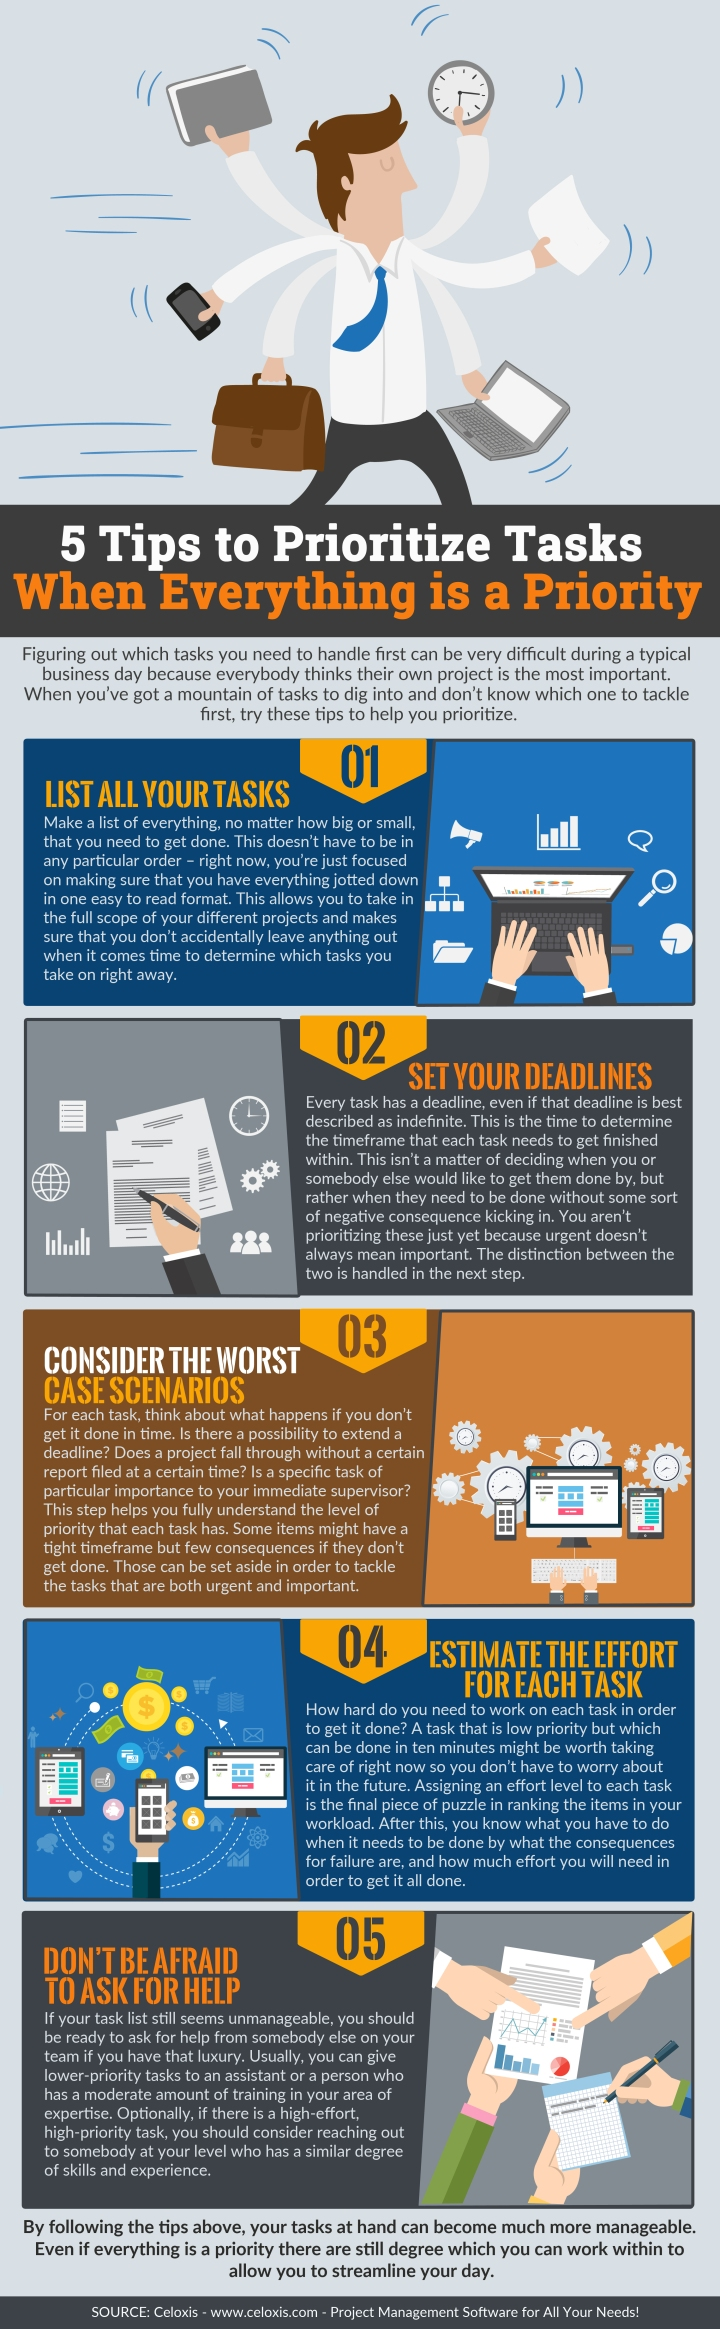 INFOGRAPHIC: 5 Tips to Prioritize Tasks When Everything is a Priority